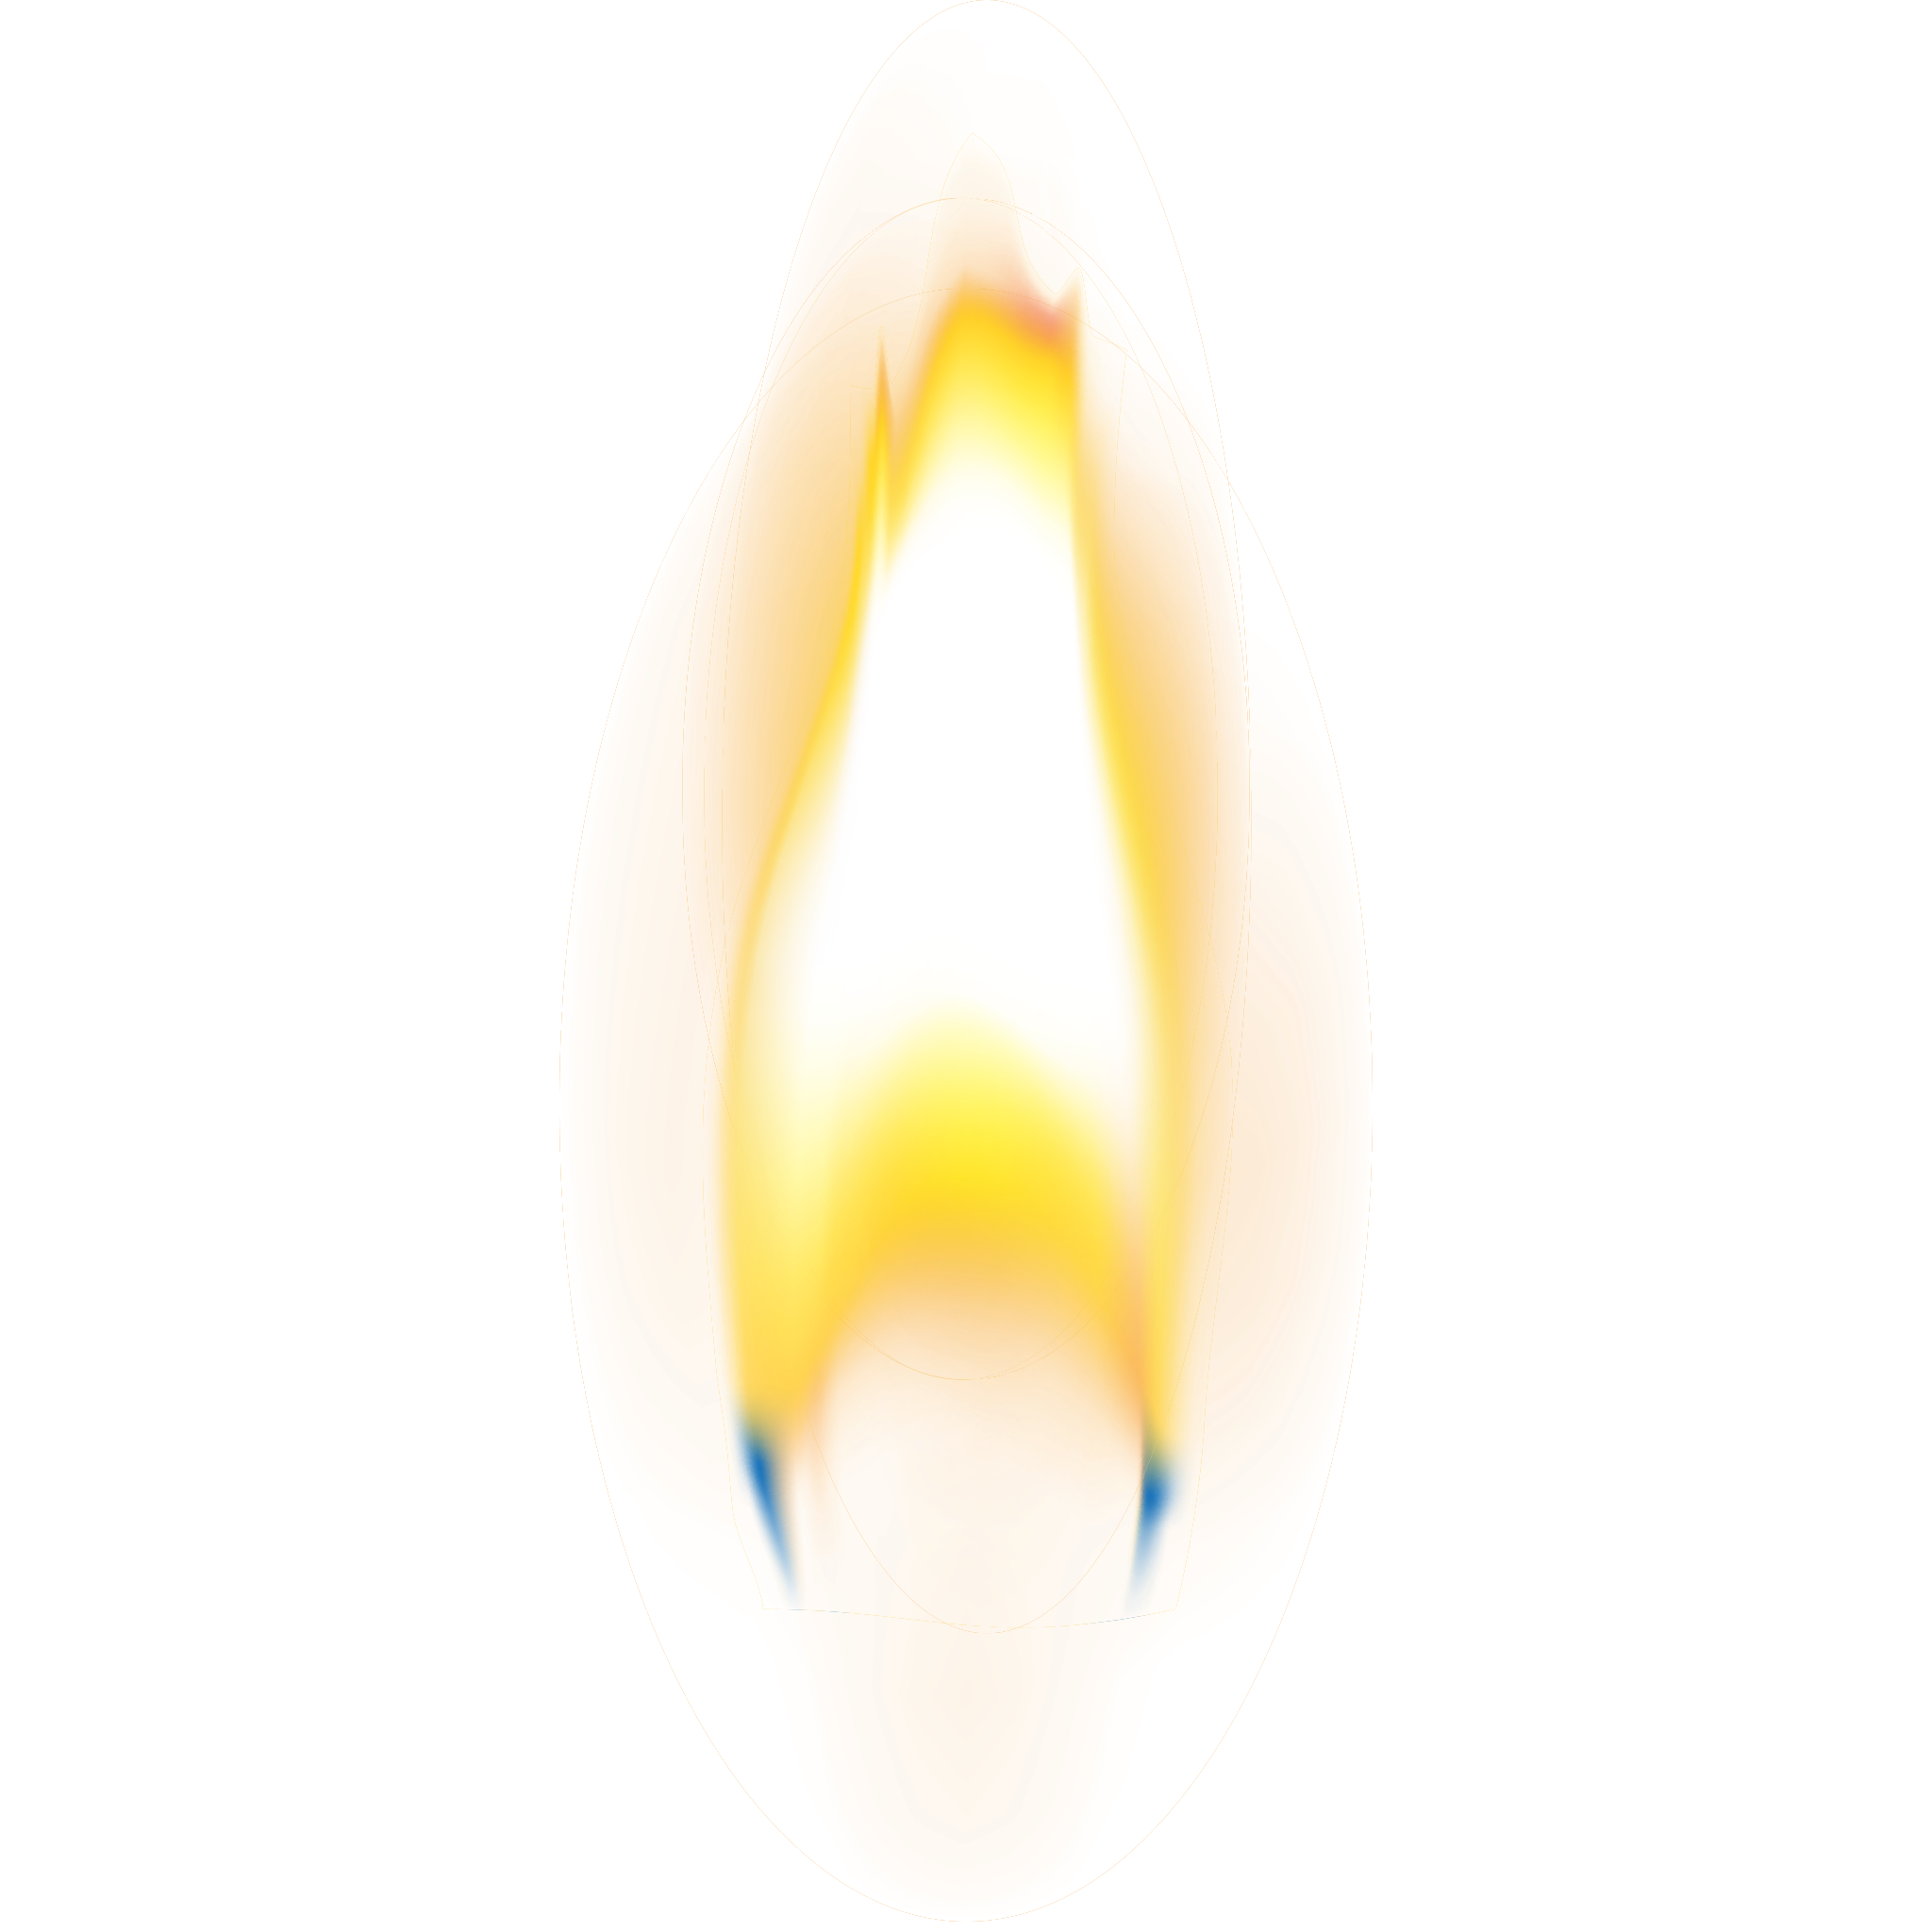 png stock Transparent candle flame. Flames png group hd